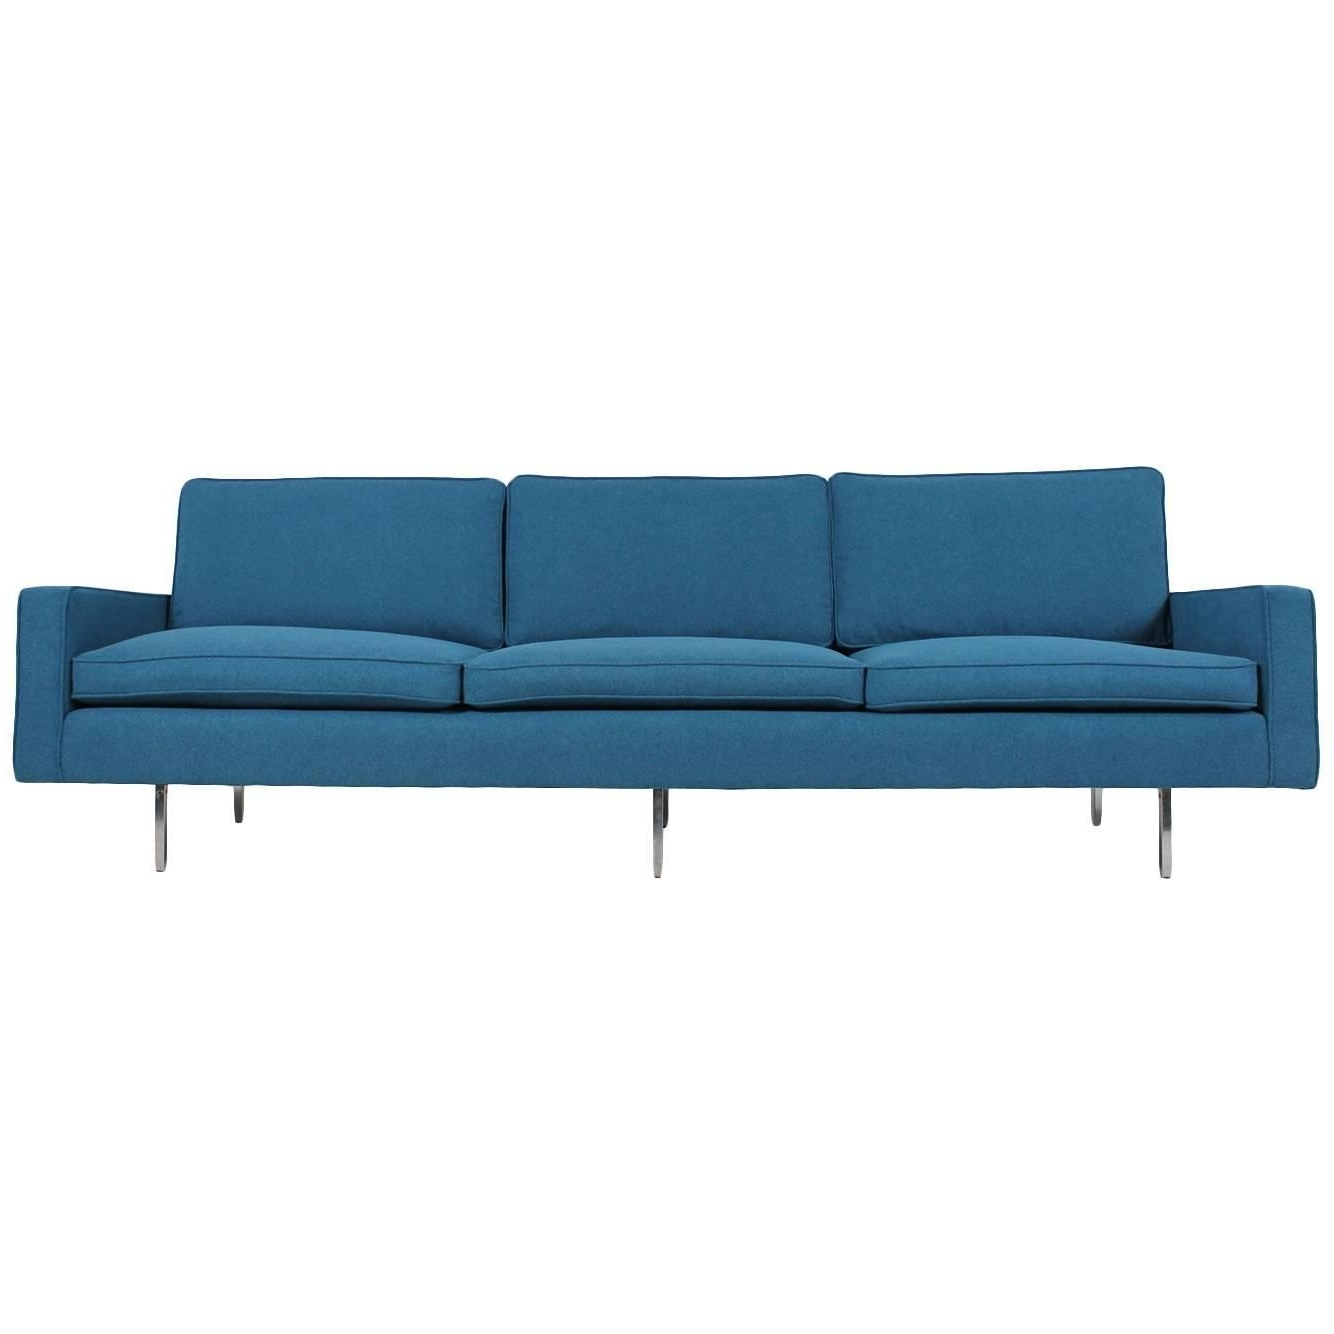 Latest Florence Knoll Sofas – 61 For Sale At 1Stdibs Pertaining To Florence Knoll Fabric Sofas (View 19 of 20)